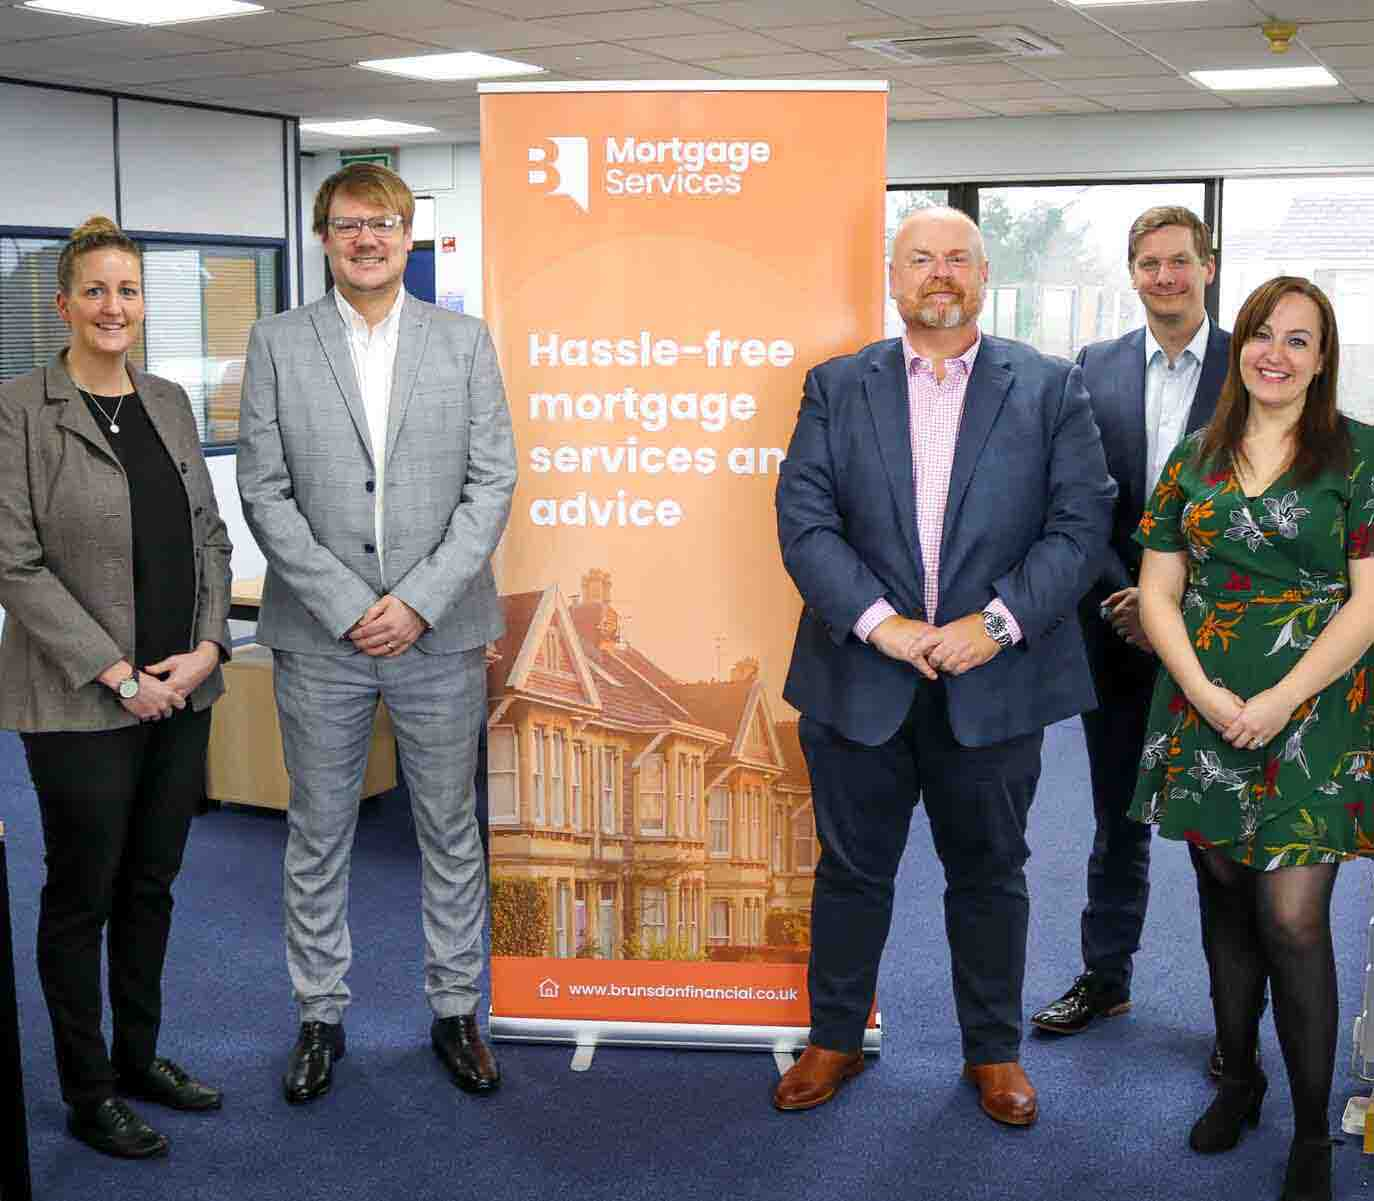 brusndon-financial-launch-new-mortgage-service[1]